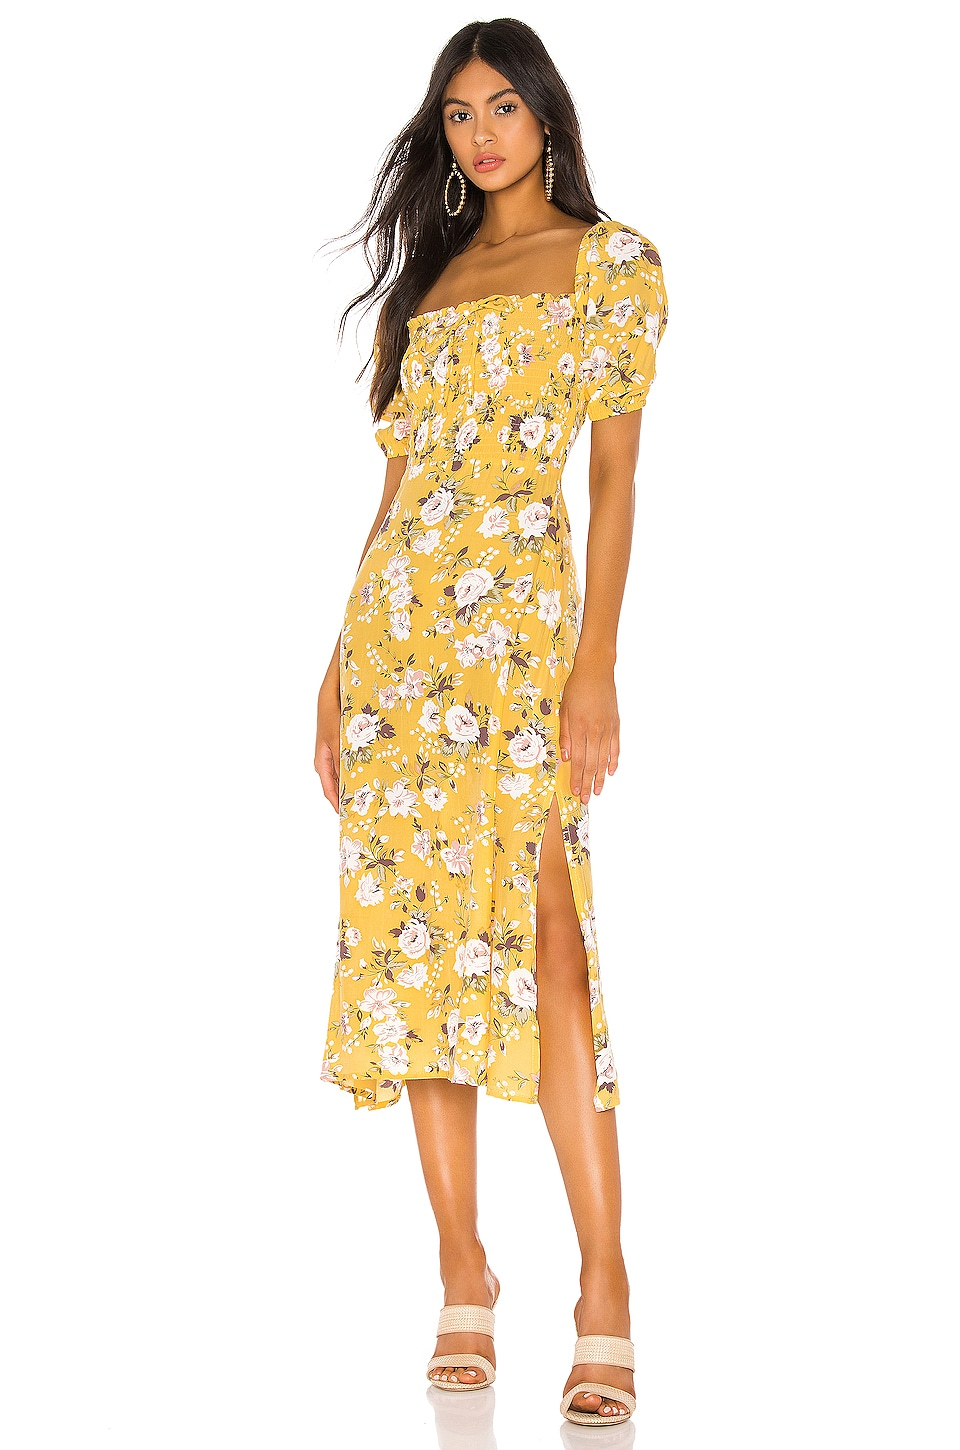 FAITHFULL THE BRAND Majorelle Dress in Jasmin Yellow Pomeline Floral